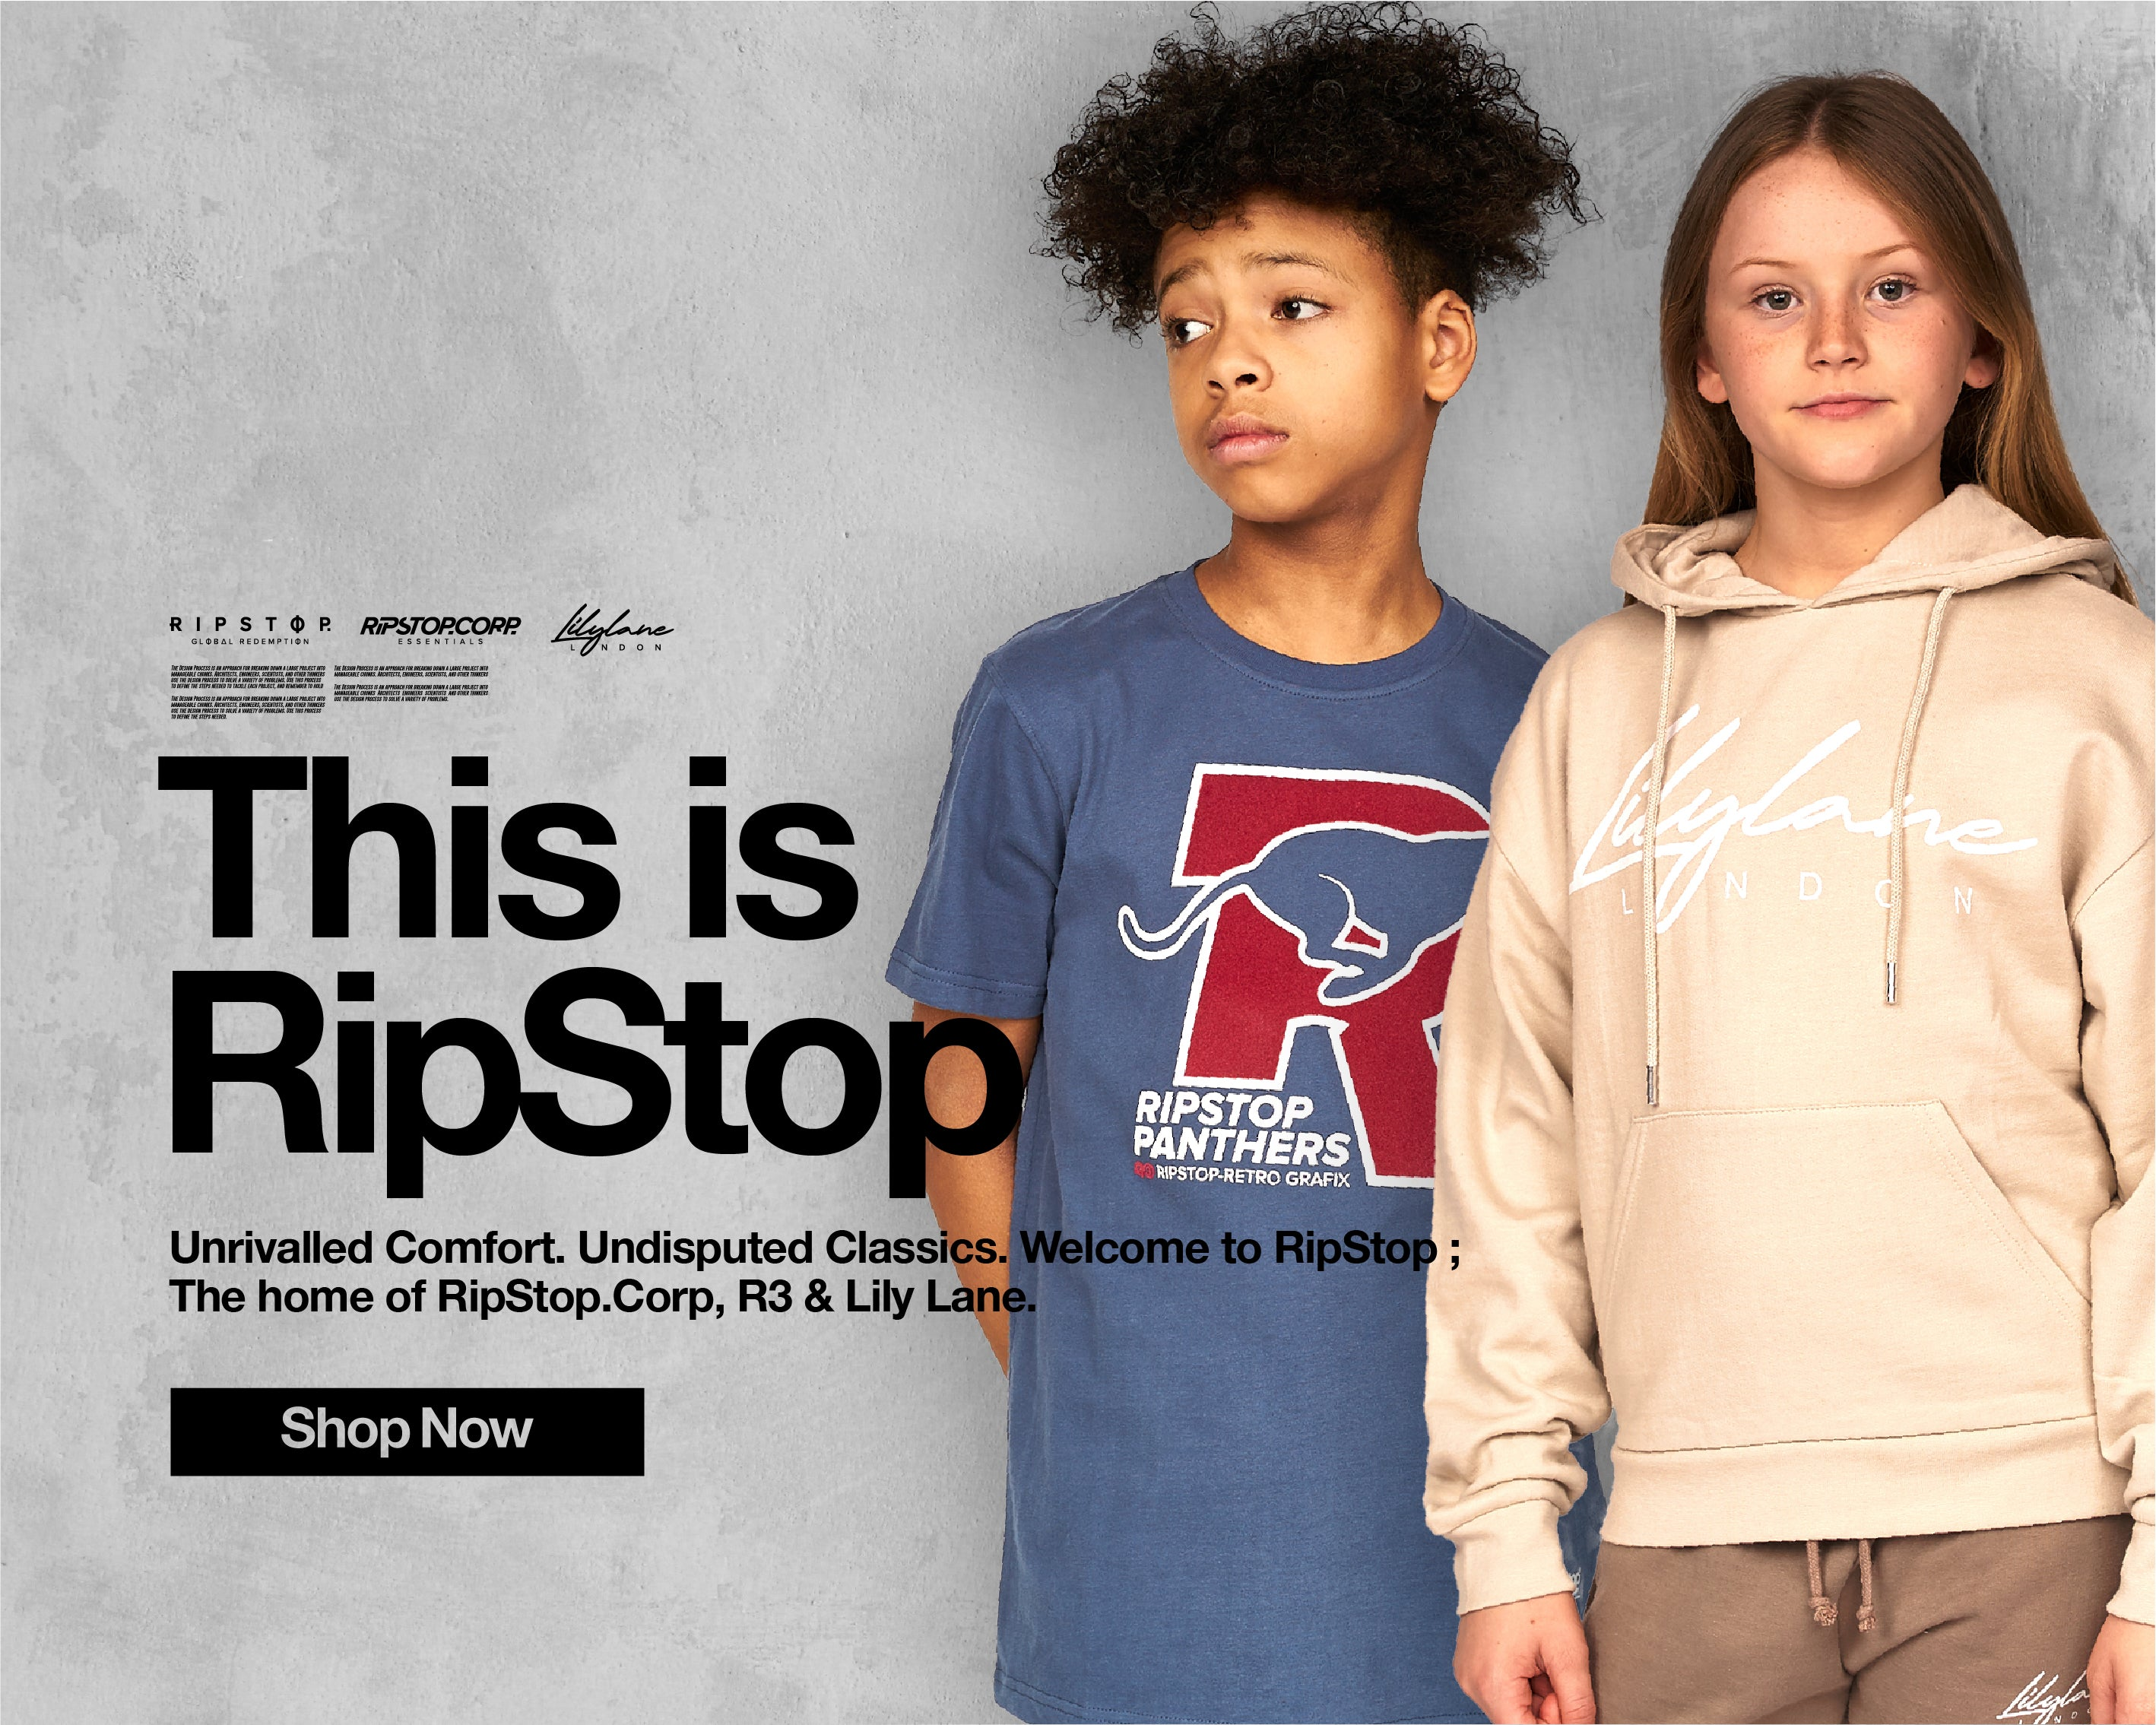 Ripstop Clothing